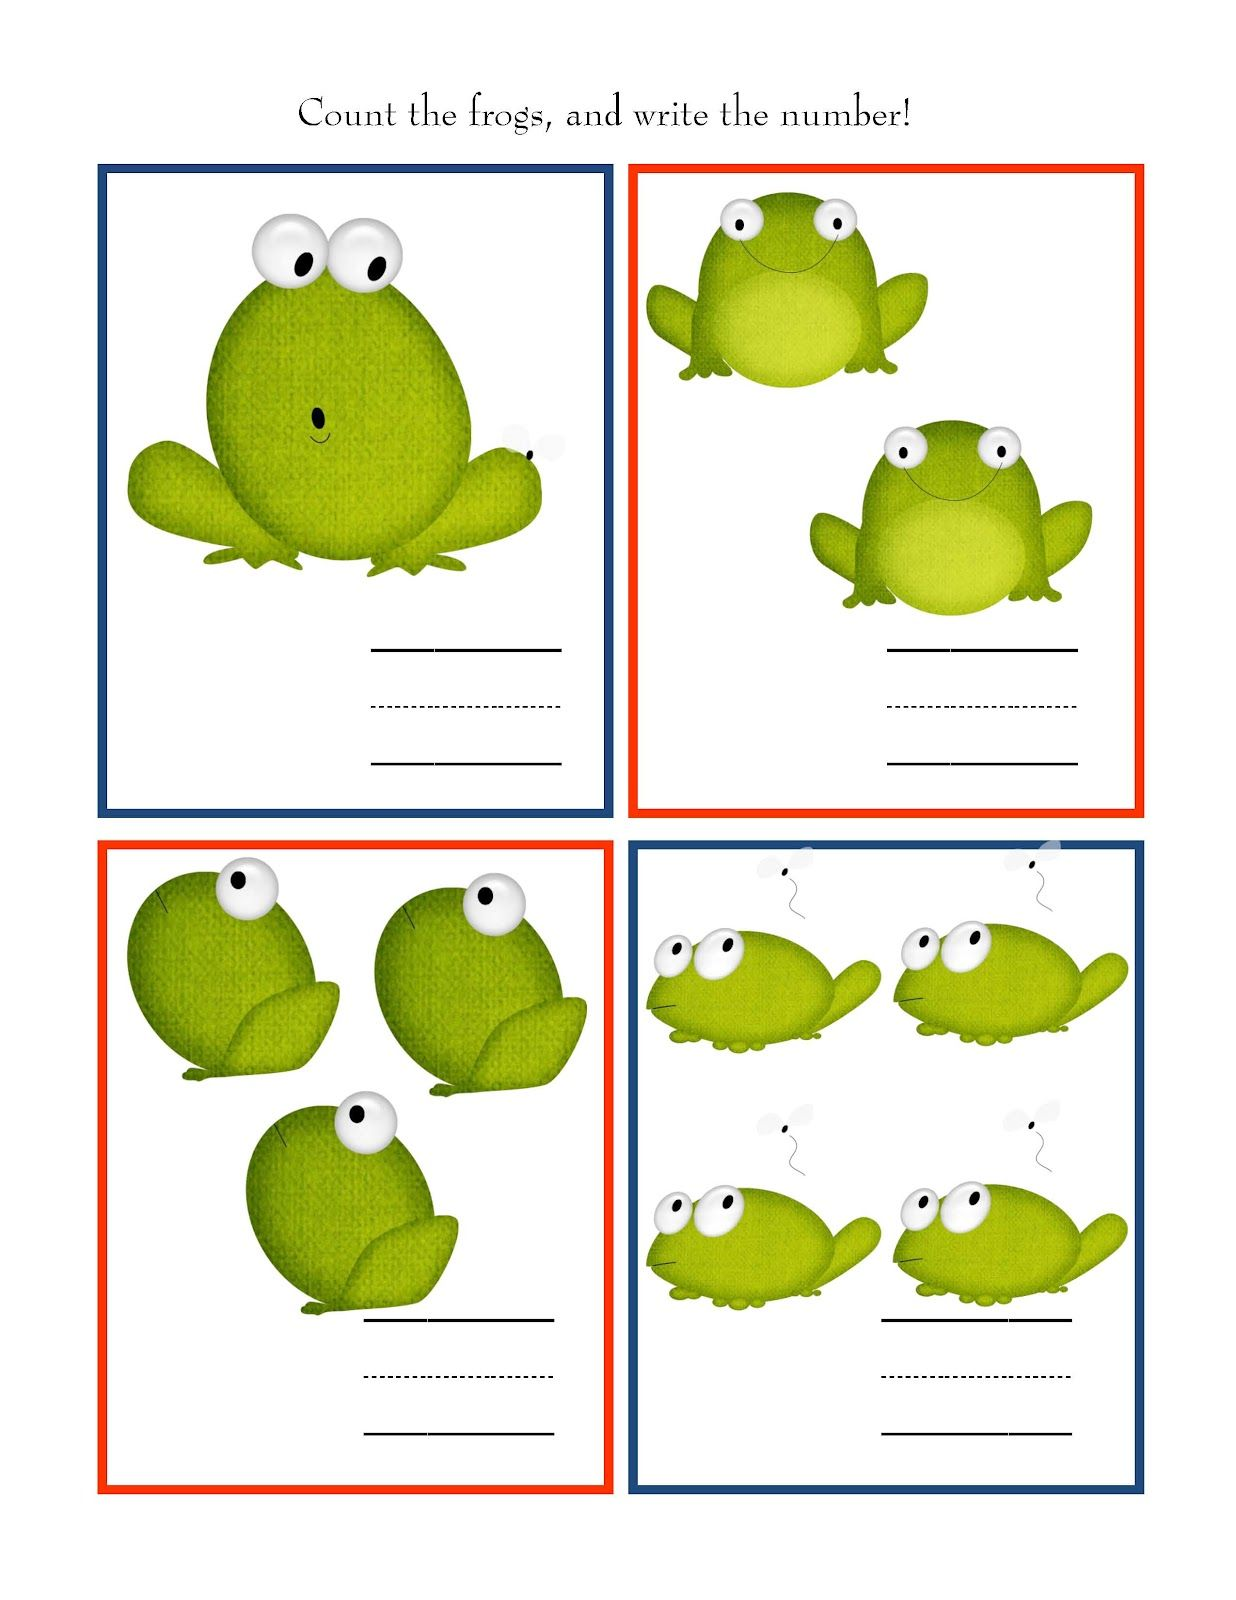 Preschool Printables: Count the number of frogs and then write the ...